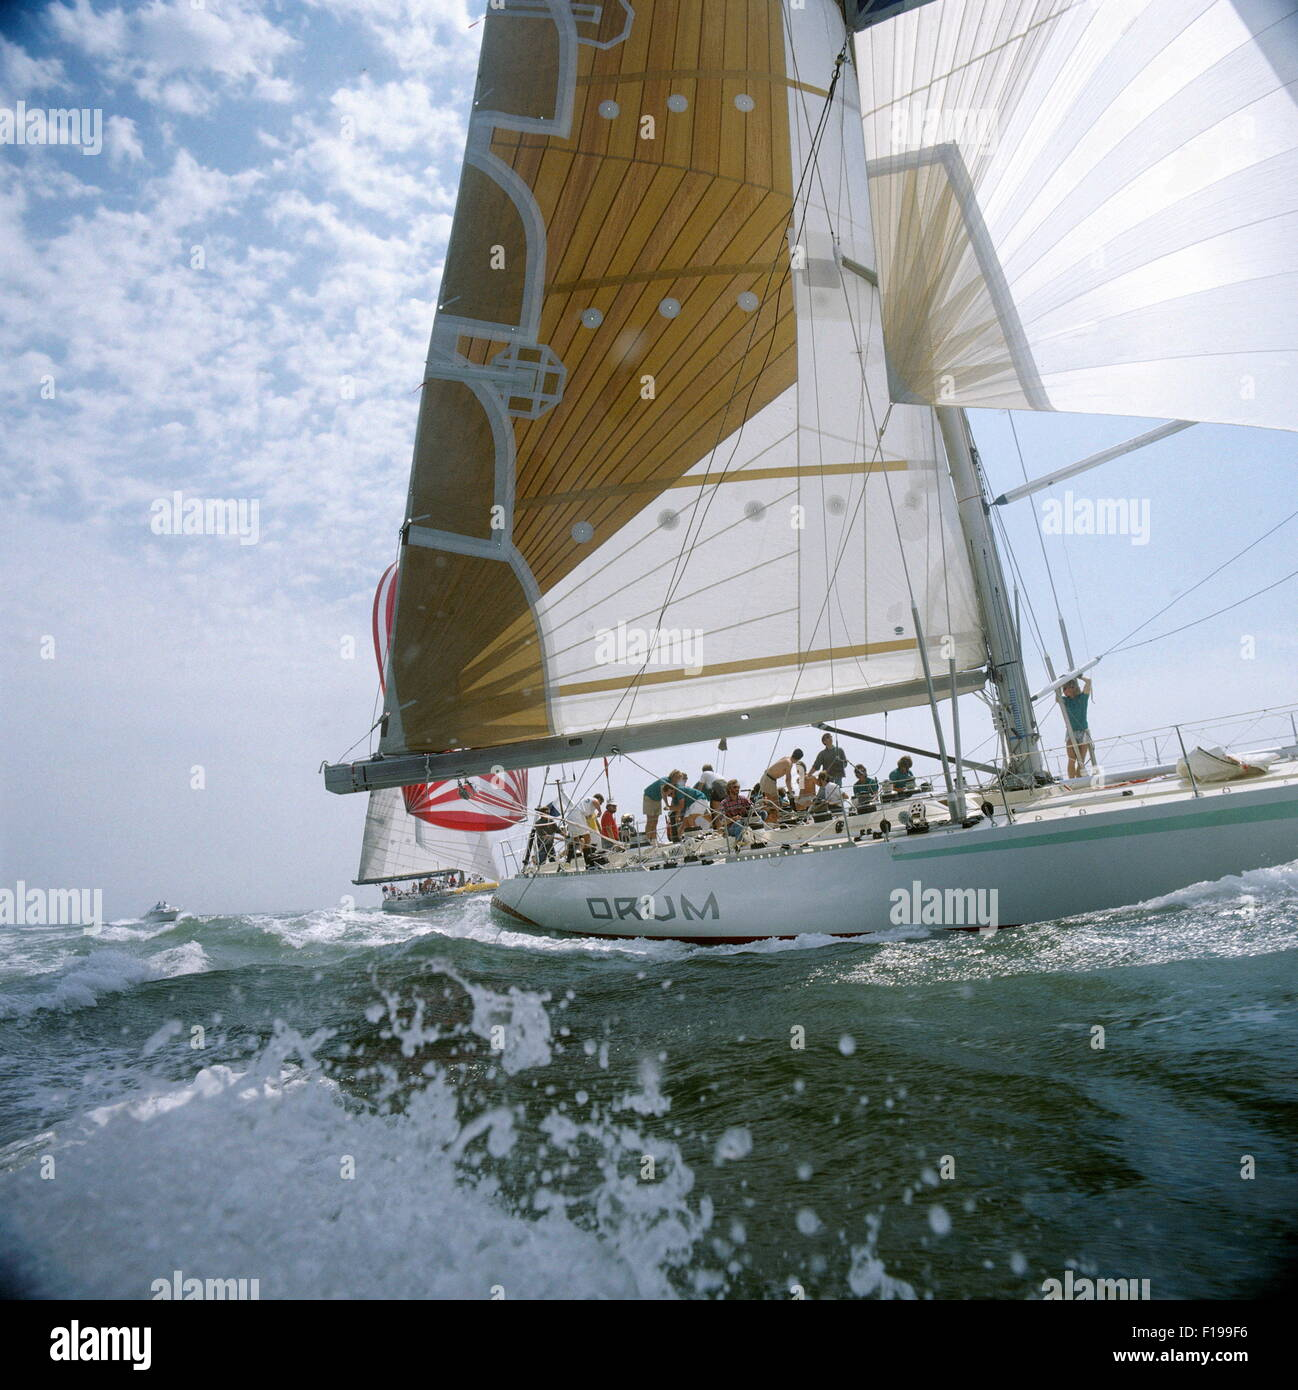 AJAXNETPHOTO. 1985. SOLENT, Inglaterra. - WHITBREAD Round the World race - Simon le bon el tambor. Es un yate WHITBREAD Imagen De Stock